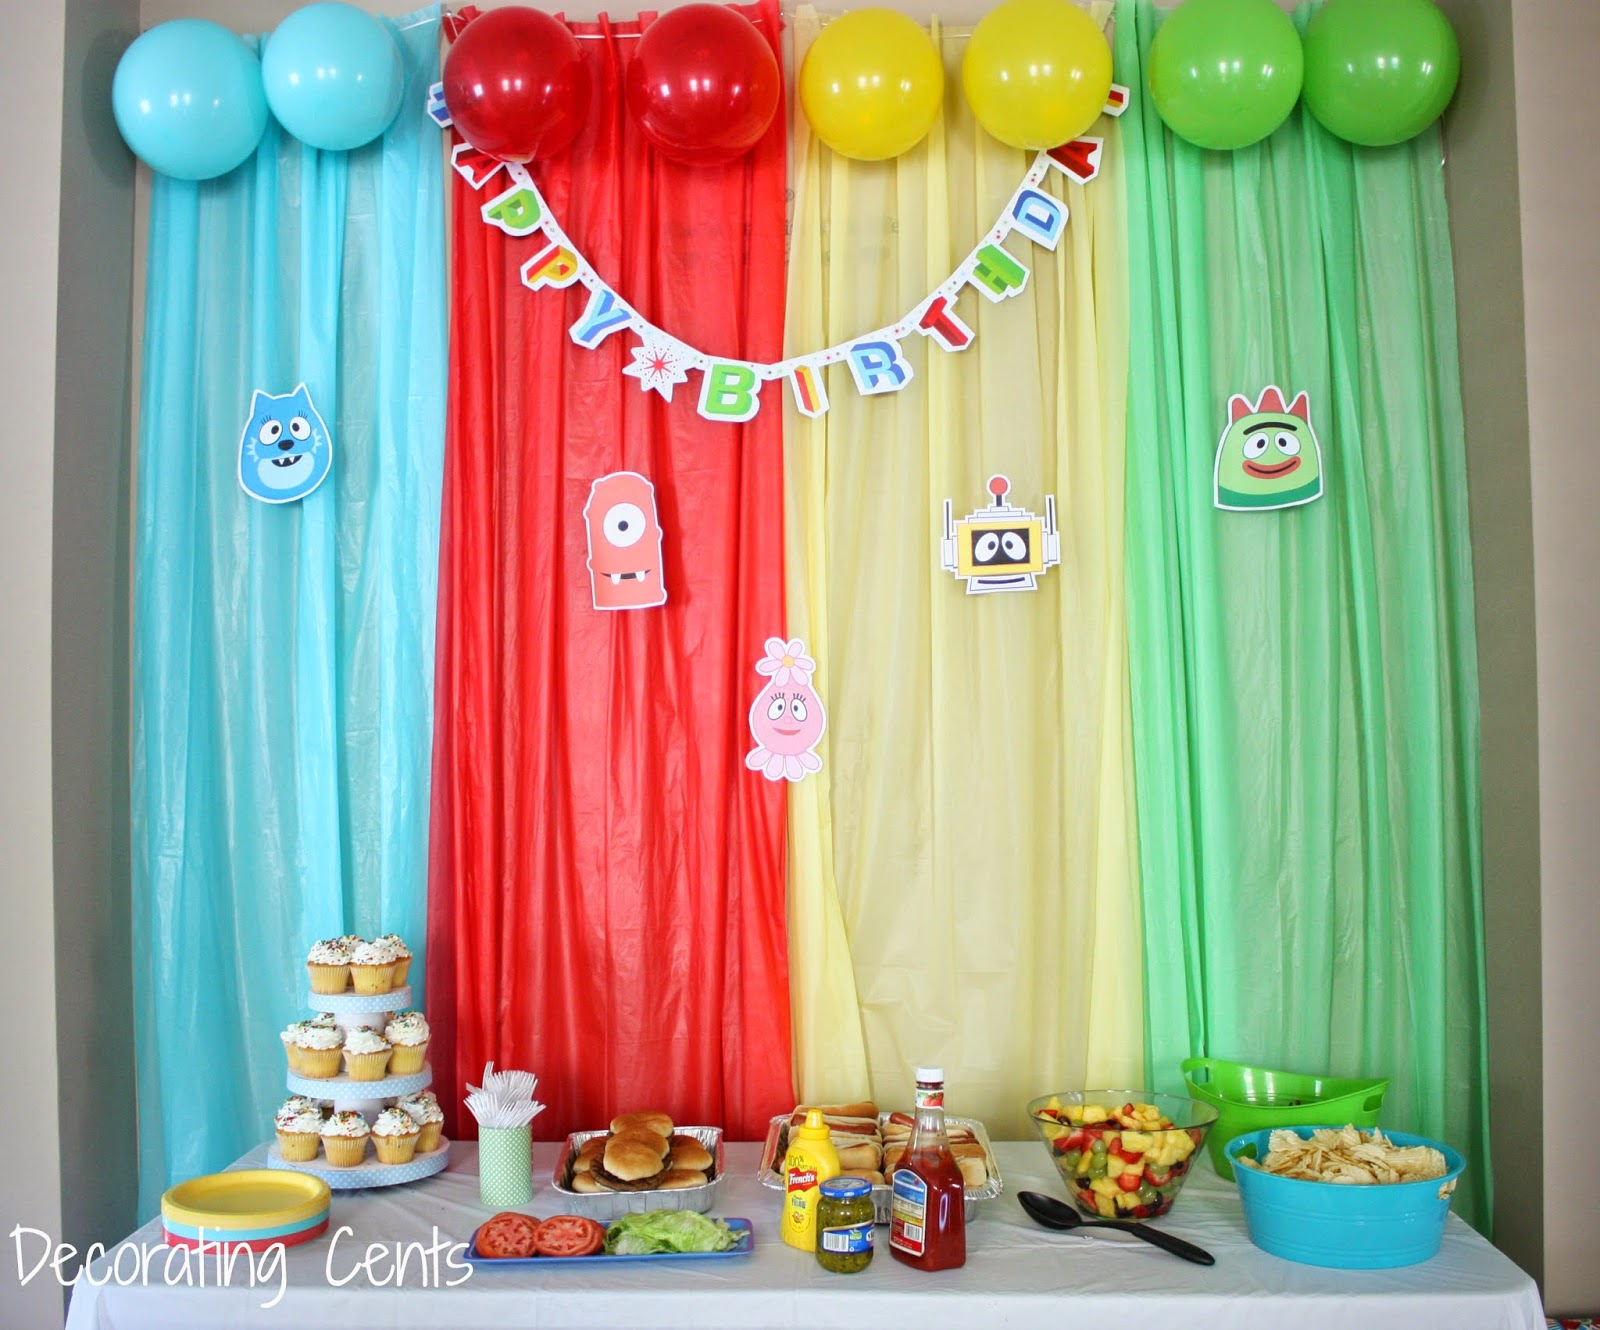 Decorating Cents: Yo Gabba Gabba Birthday Party